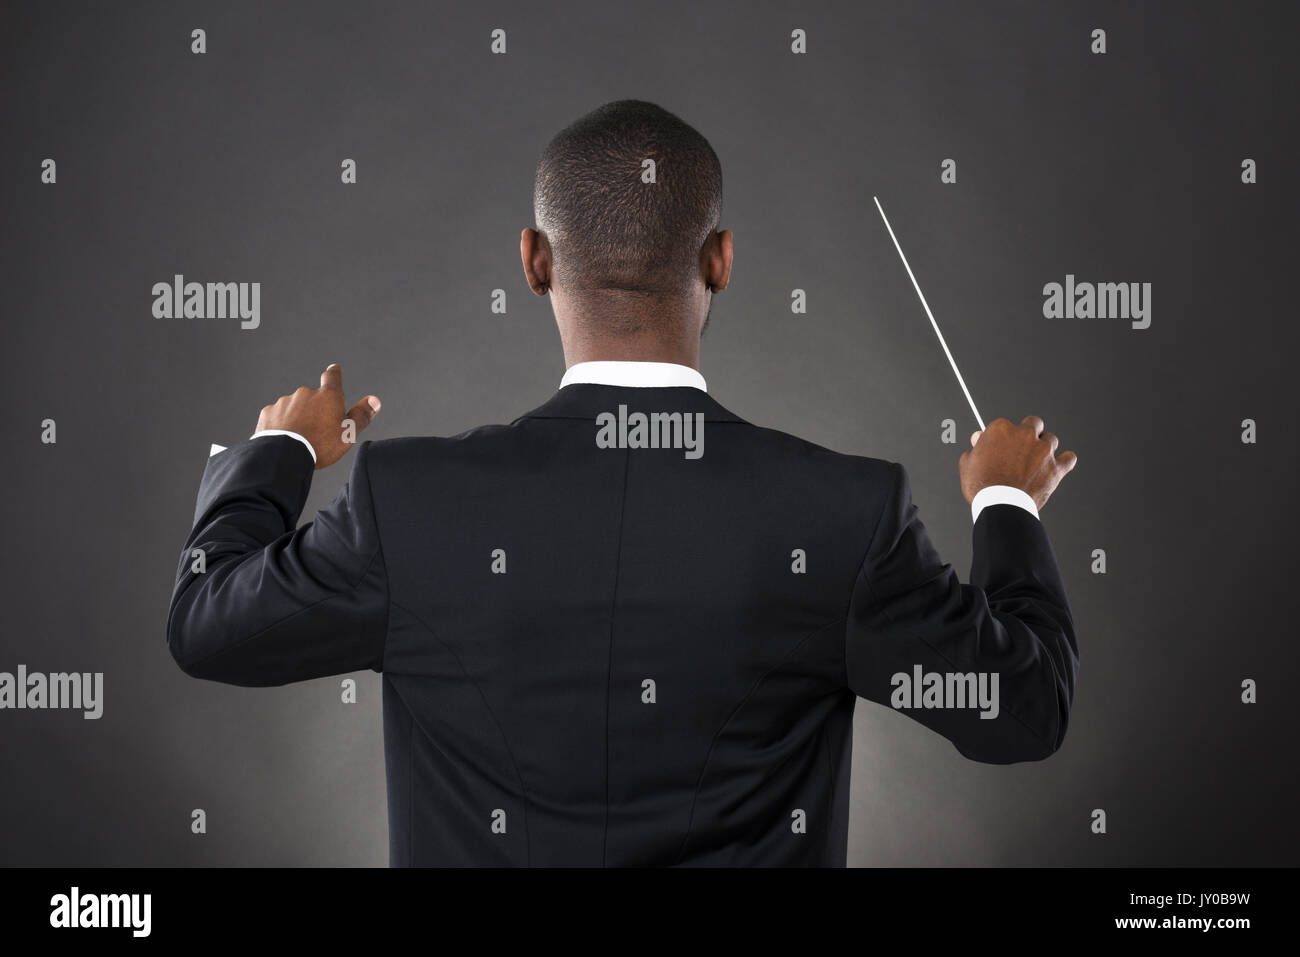 Young African Conductor Directing With His Baton Against Black Background - Stock Image